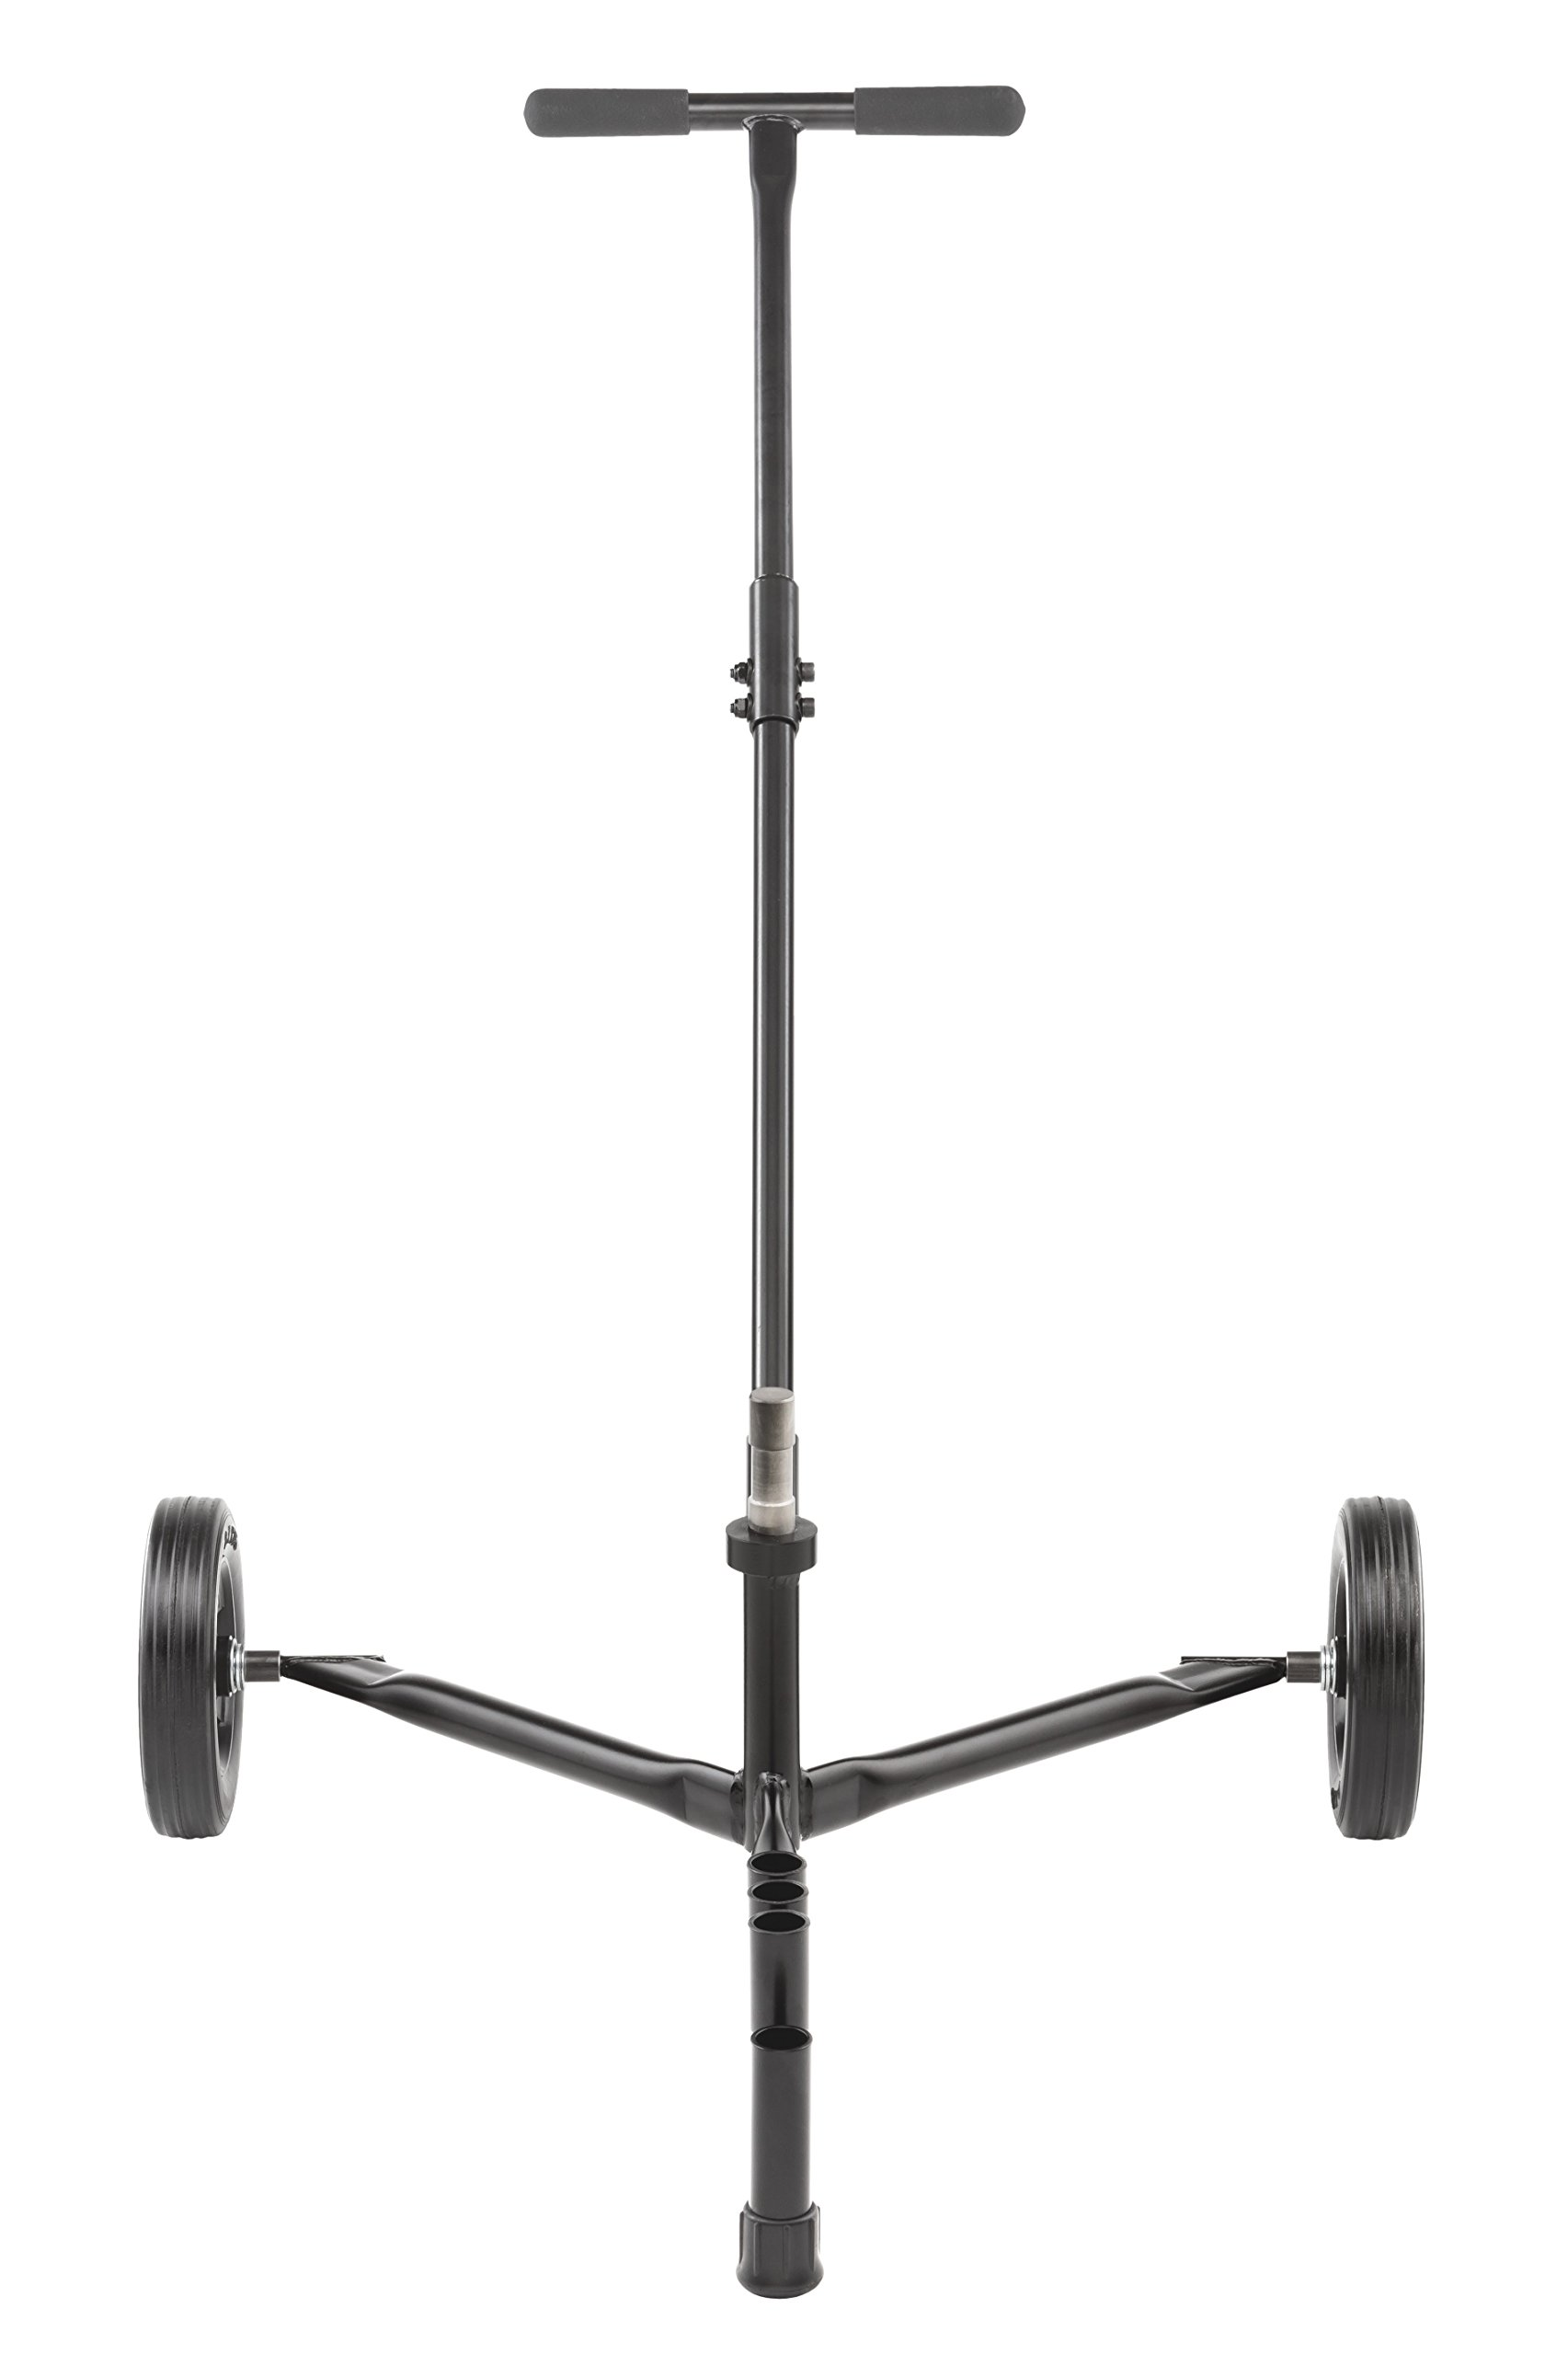 ATEC Caddypod Pitching Machine Base